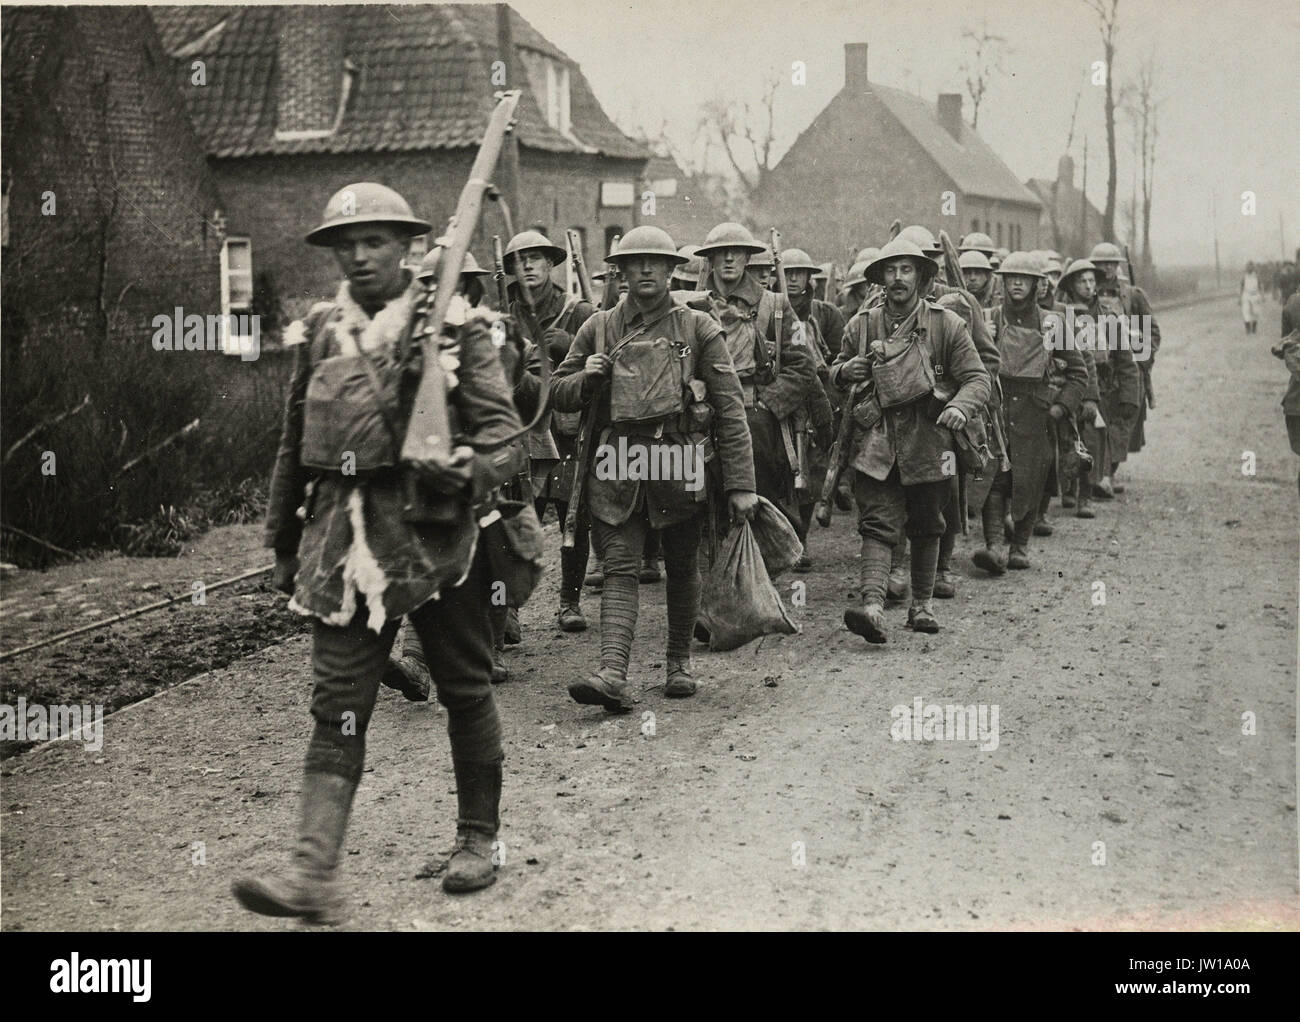 Official photograph taken on the British Western Front in France _ The German offensive - Some of the gallant 55th going for a short rest after fighting hard - - Stock Image